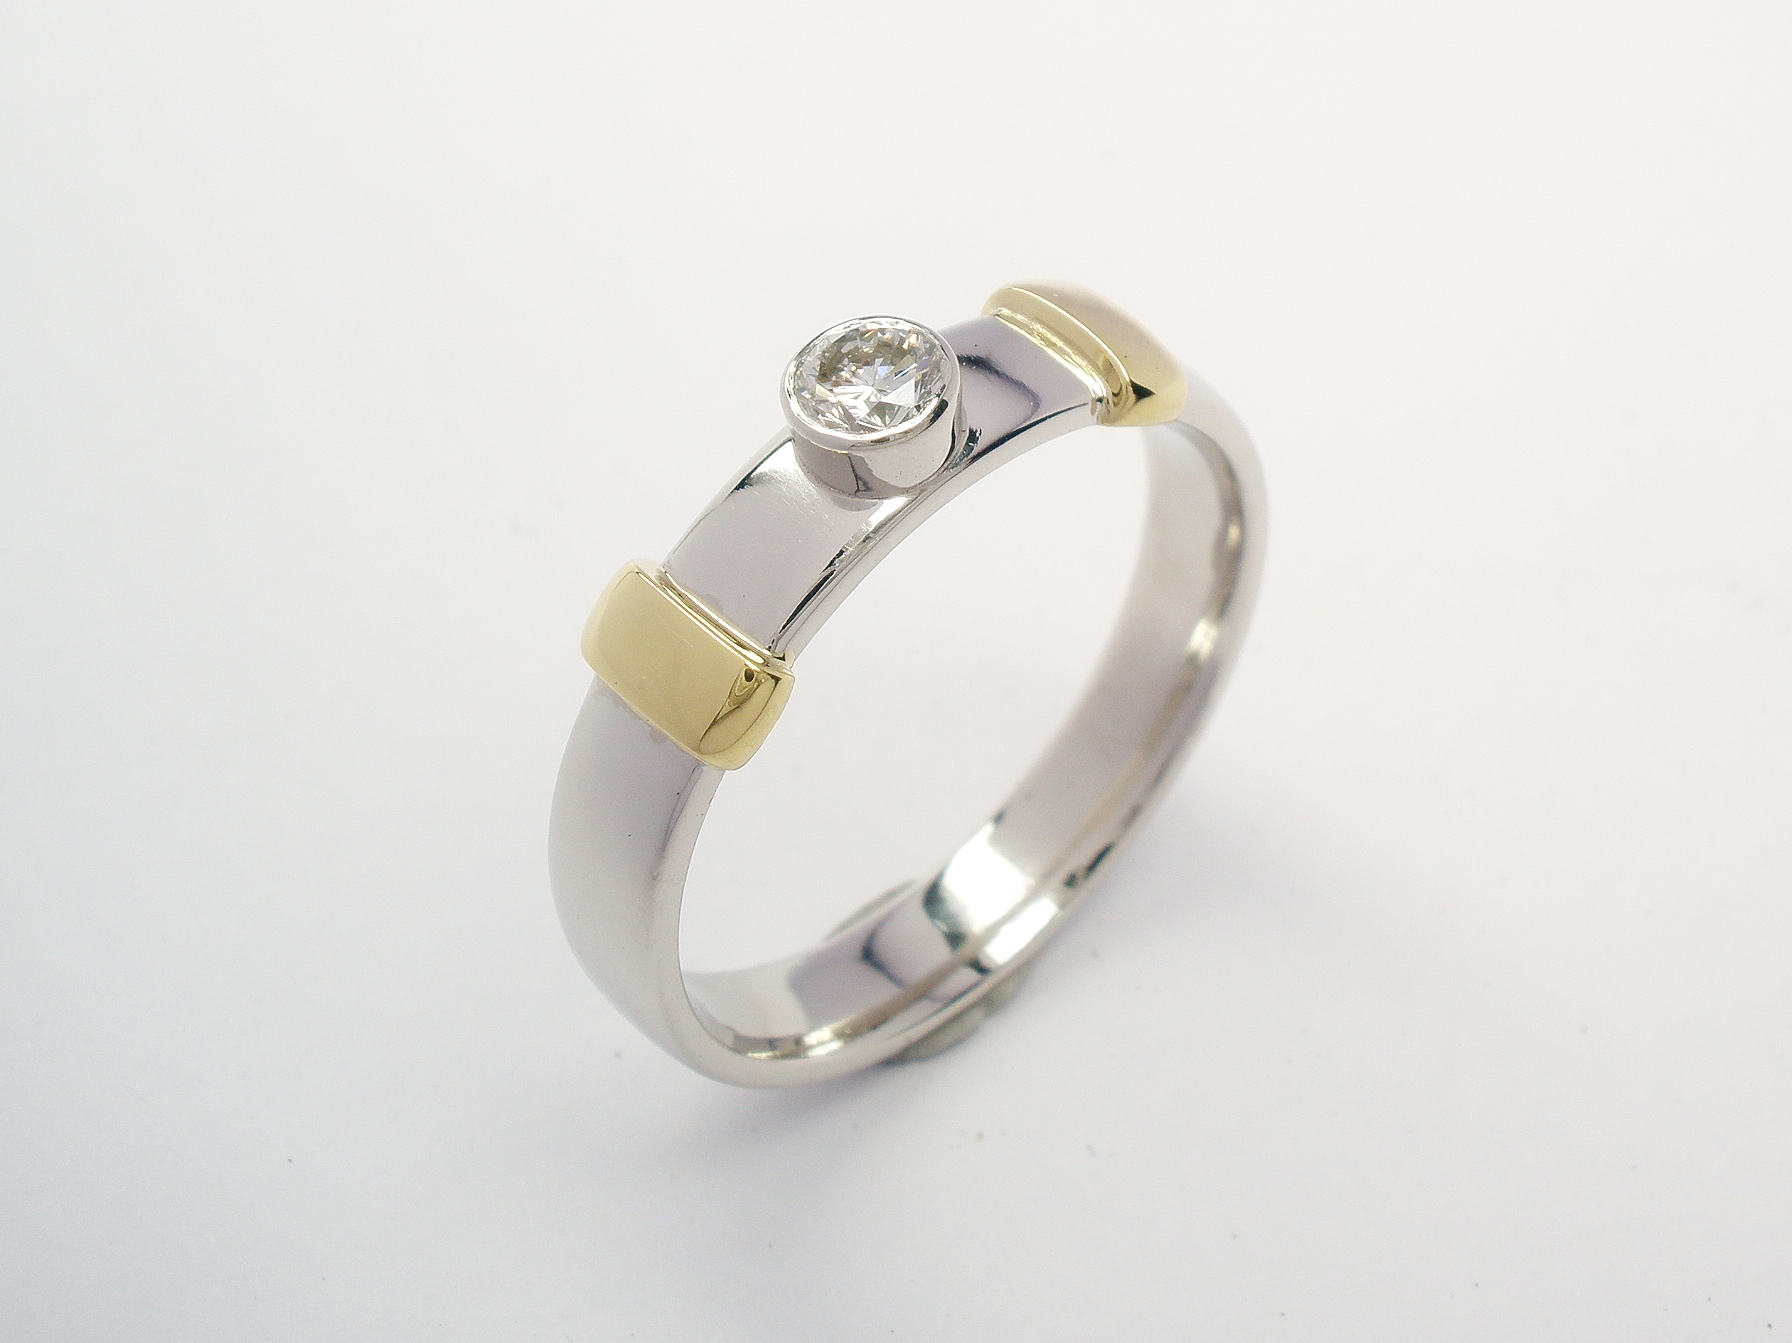 A platinum and 18ct yellow gold rub-over set single stone diamond dress ring.